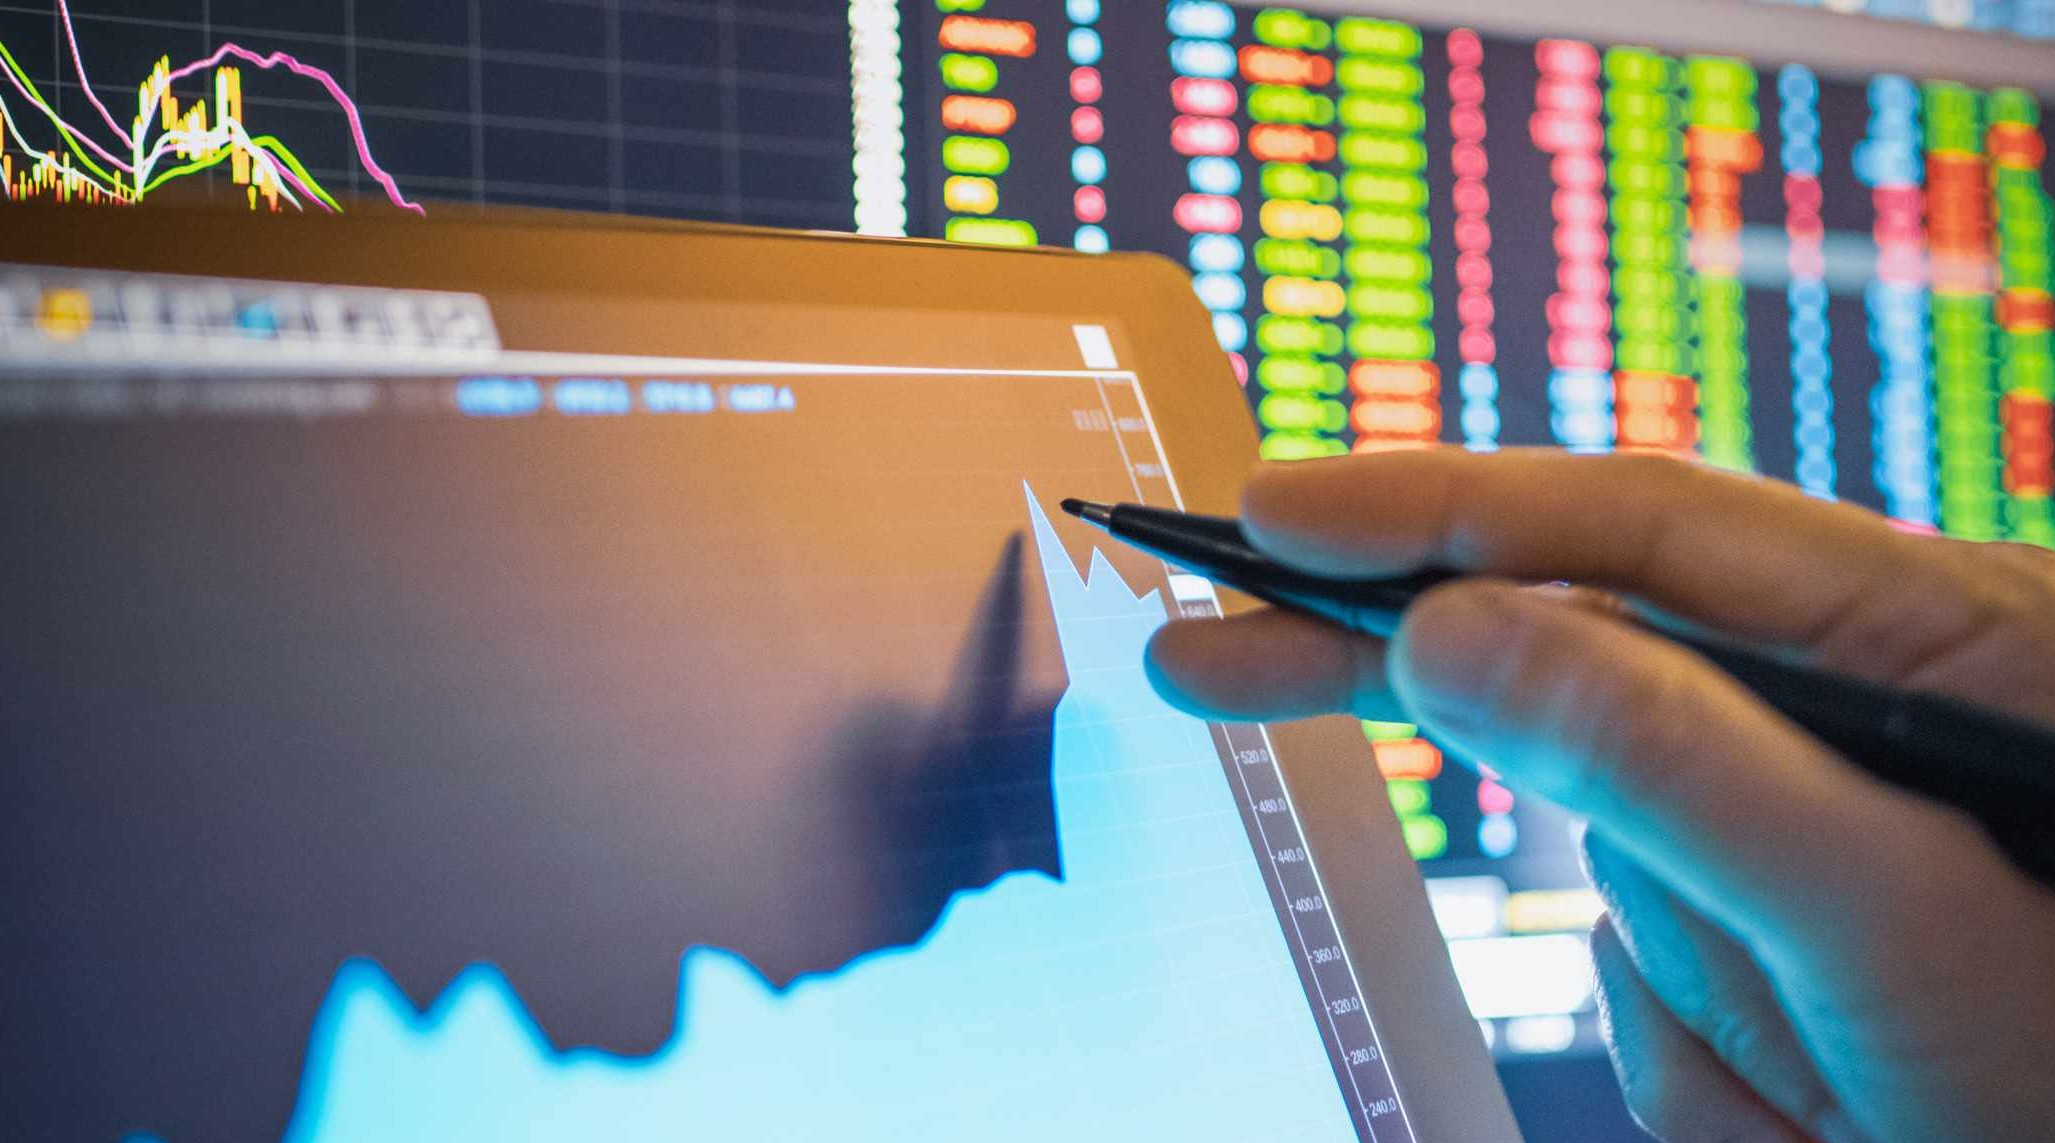 Should you consider the Stock Market as a full time career option?